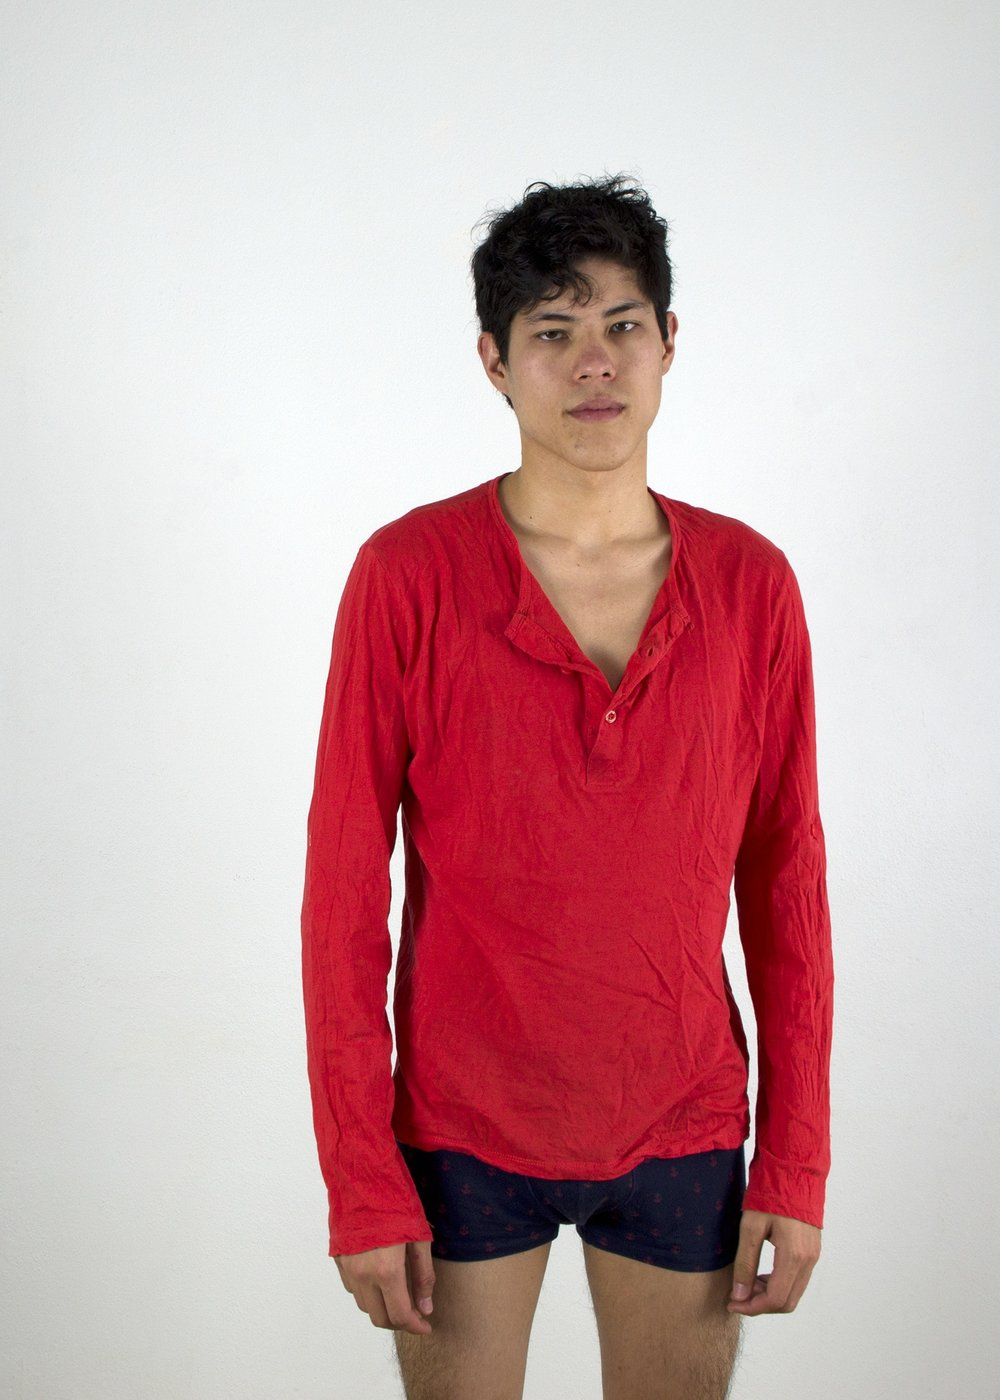 Joseph wears shirt and boxer briefs by H&M